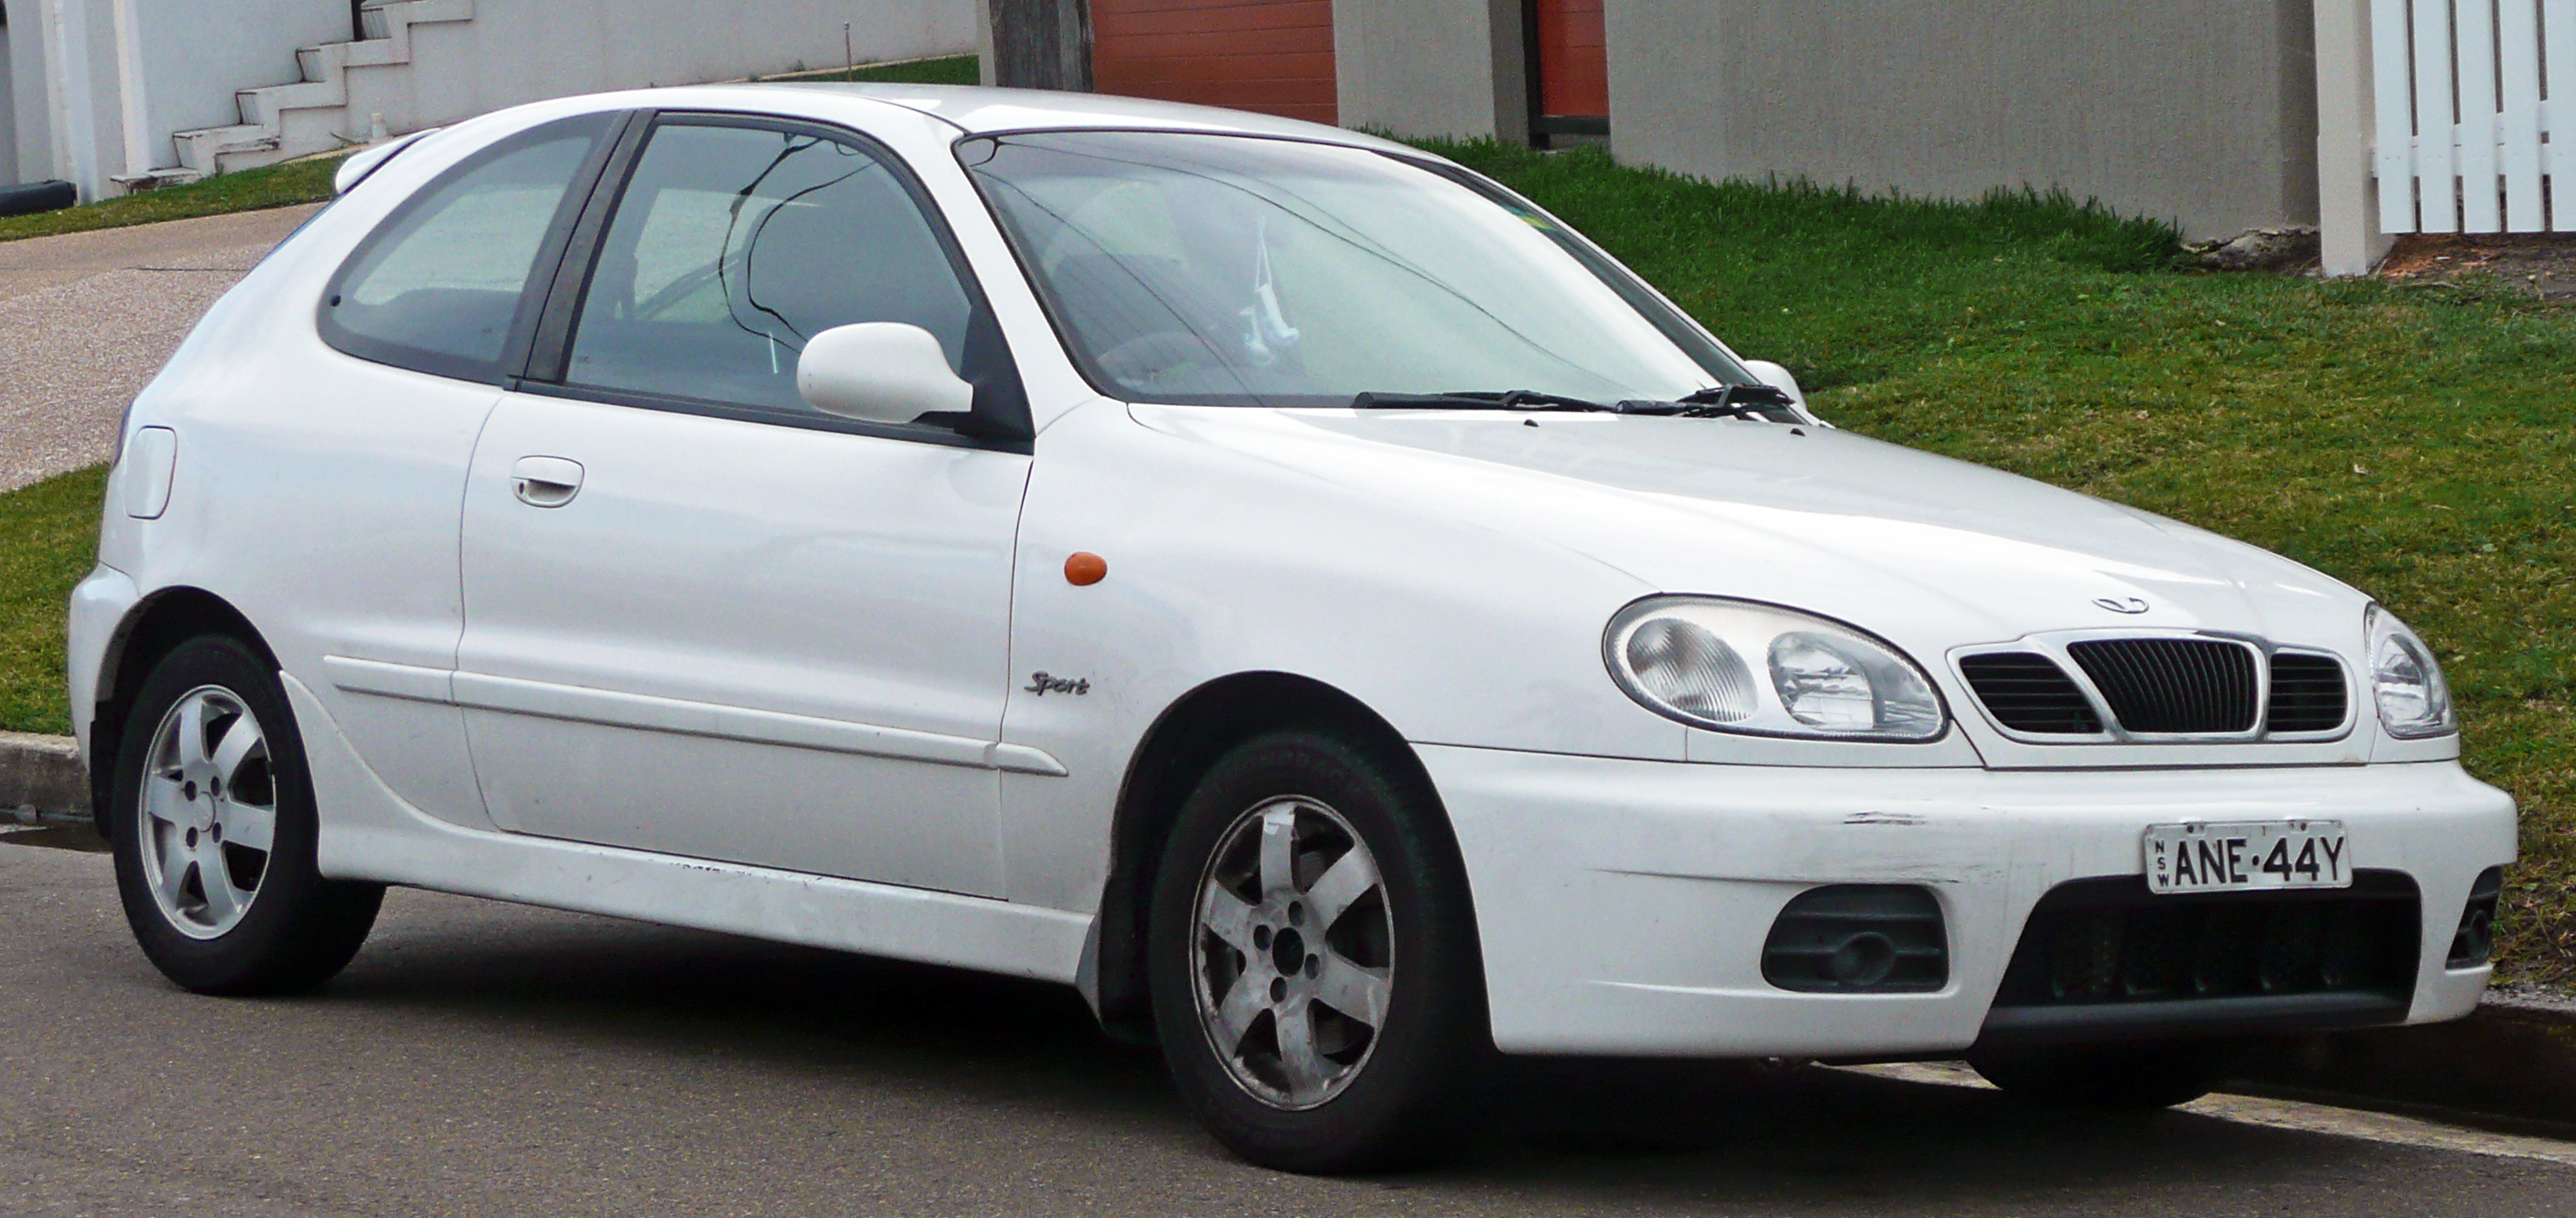 daewoo lanos (klat) 2001 wallpaper